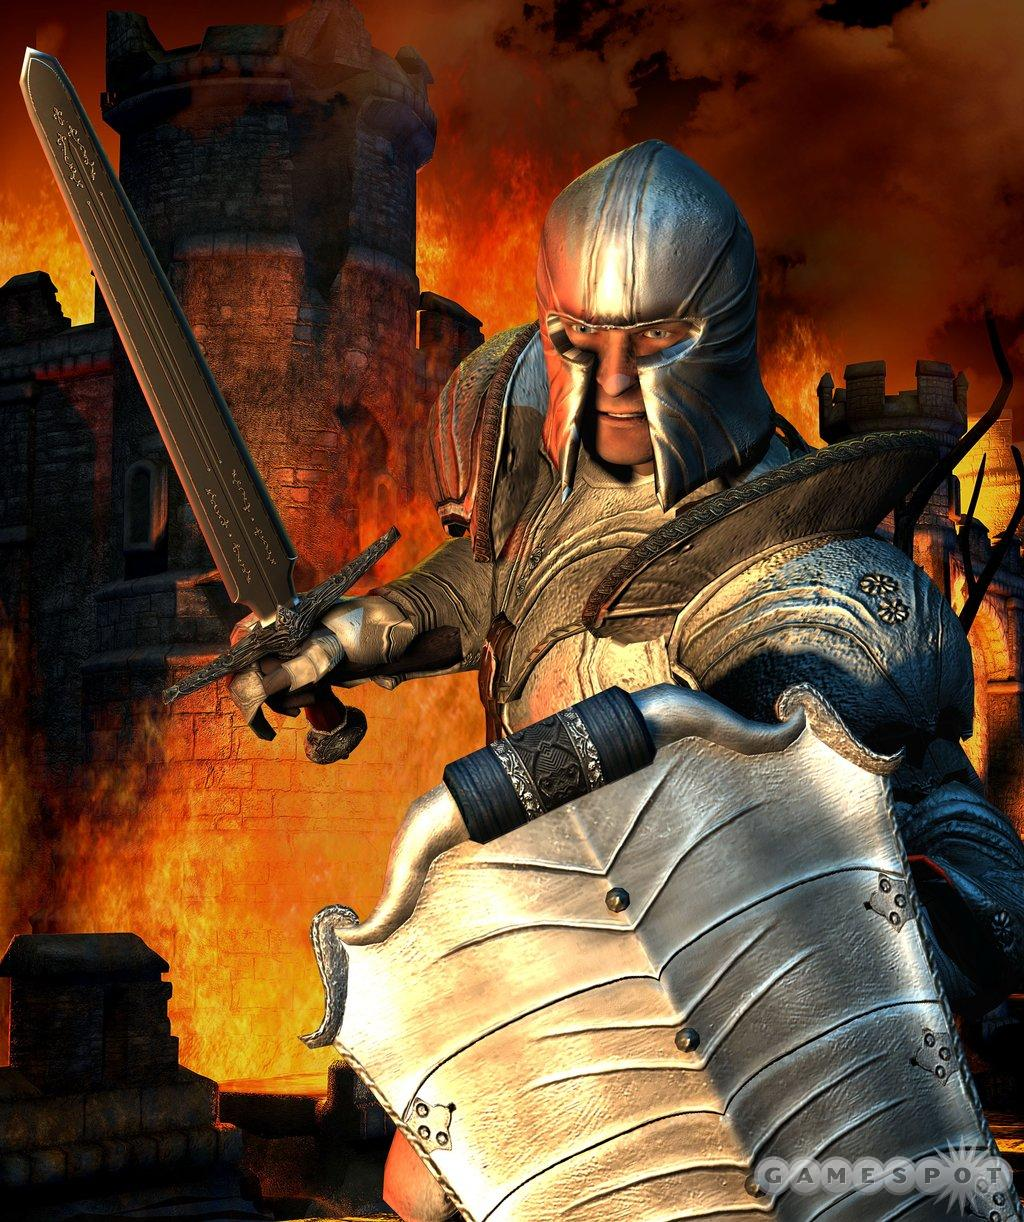 In The Elder Scrolls IV: Oblivion, you'll take up your sword and shield in a brave new world.